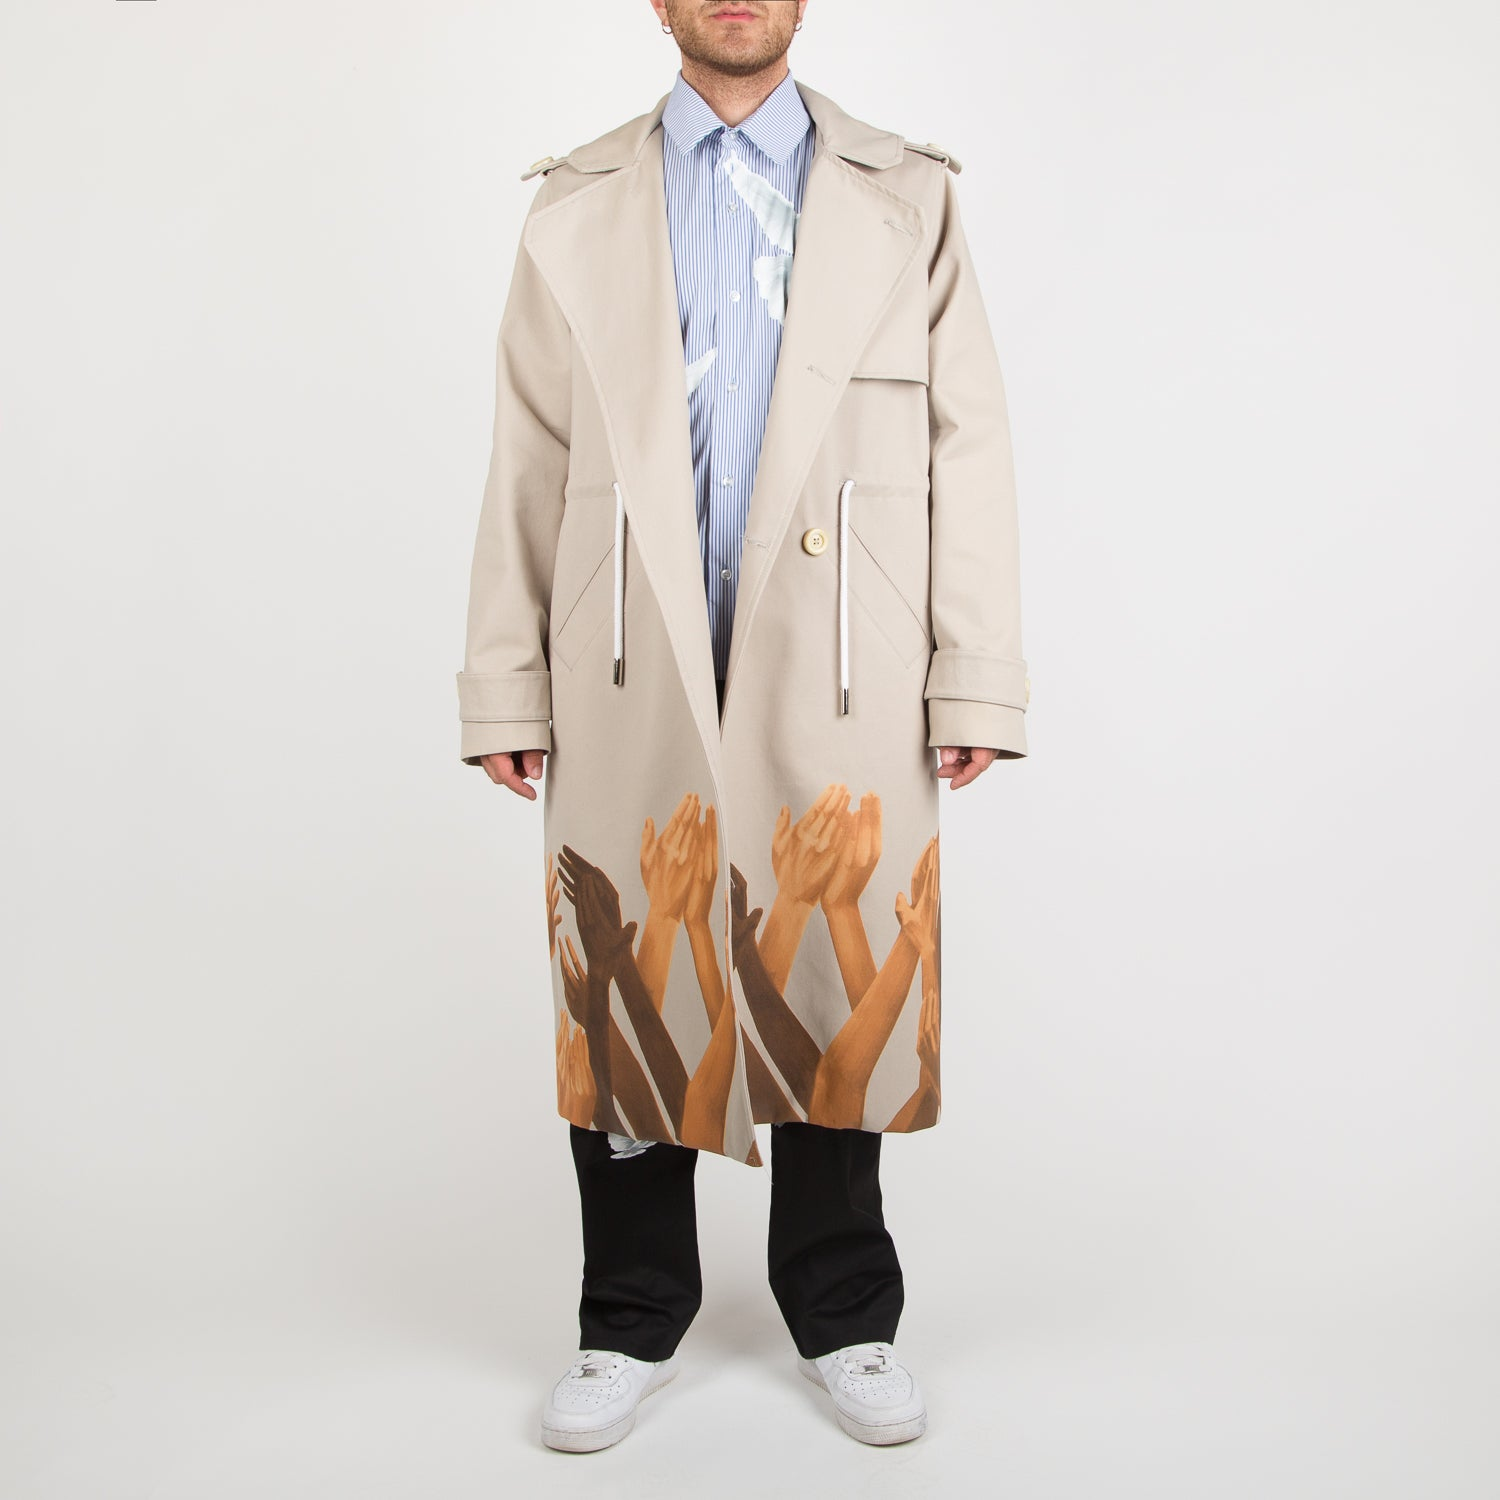 Judy trench coat in beige with print by 3.Paradis at Secret Location